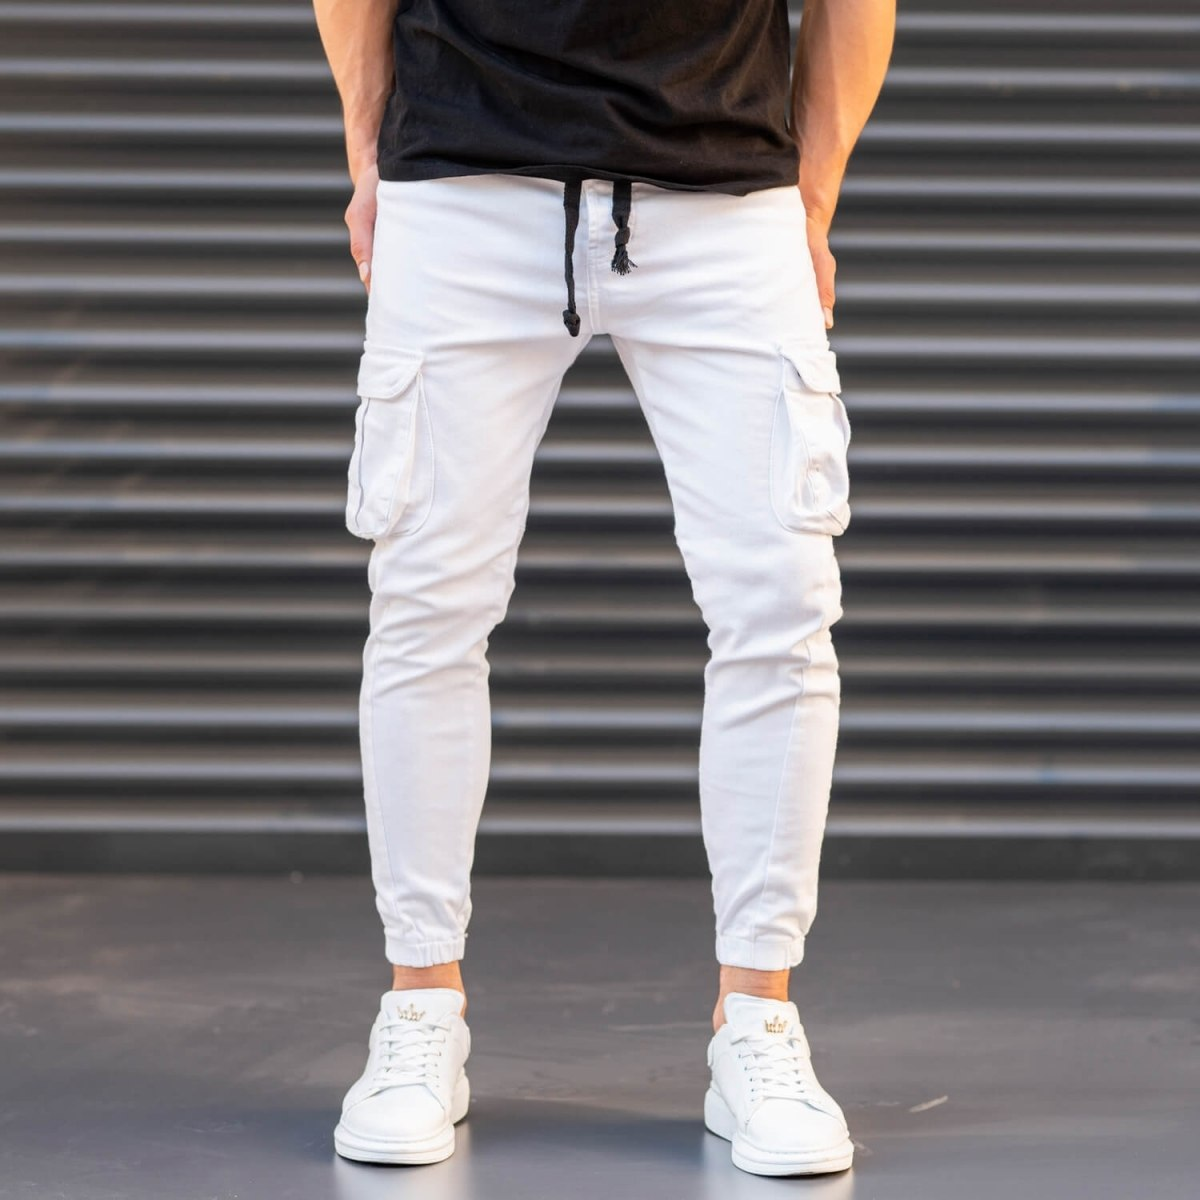 Men's Jeans with Pockets Style in White Mv Premium Brand - 1